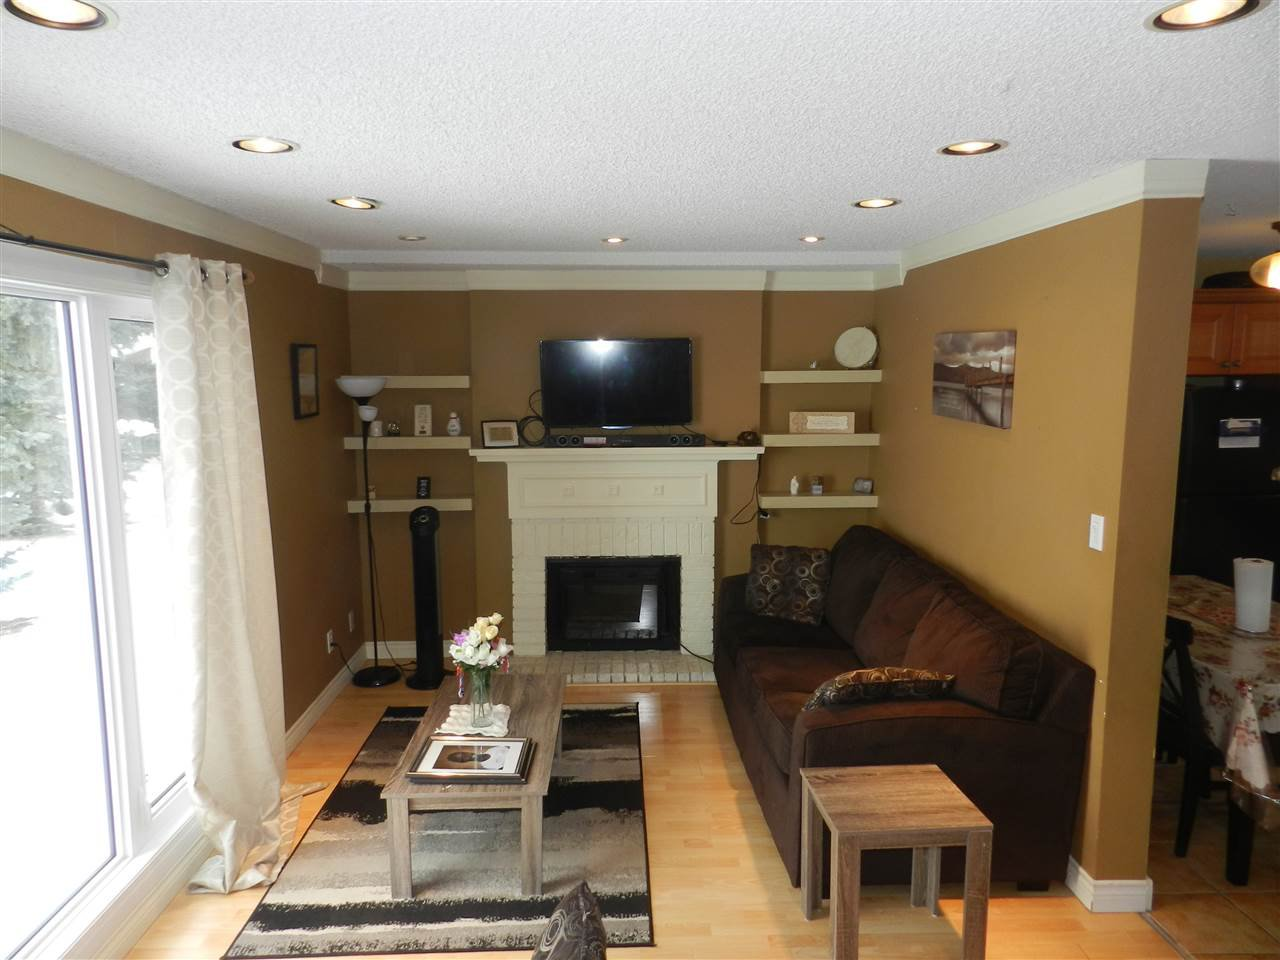 Main Photo: 1106 LAKEWOOD Road N in Edmonton: Zone 29 Townhouse for sale : MLS®# E4210534